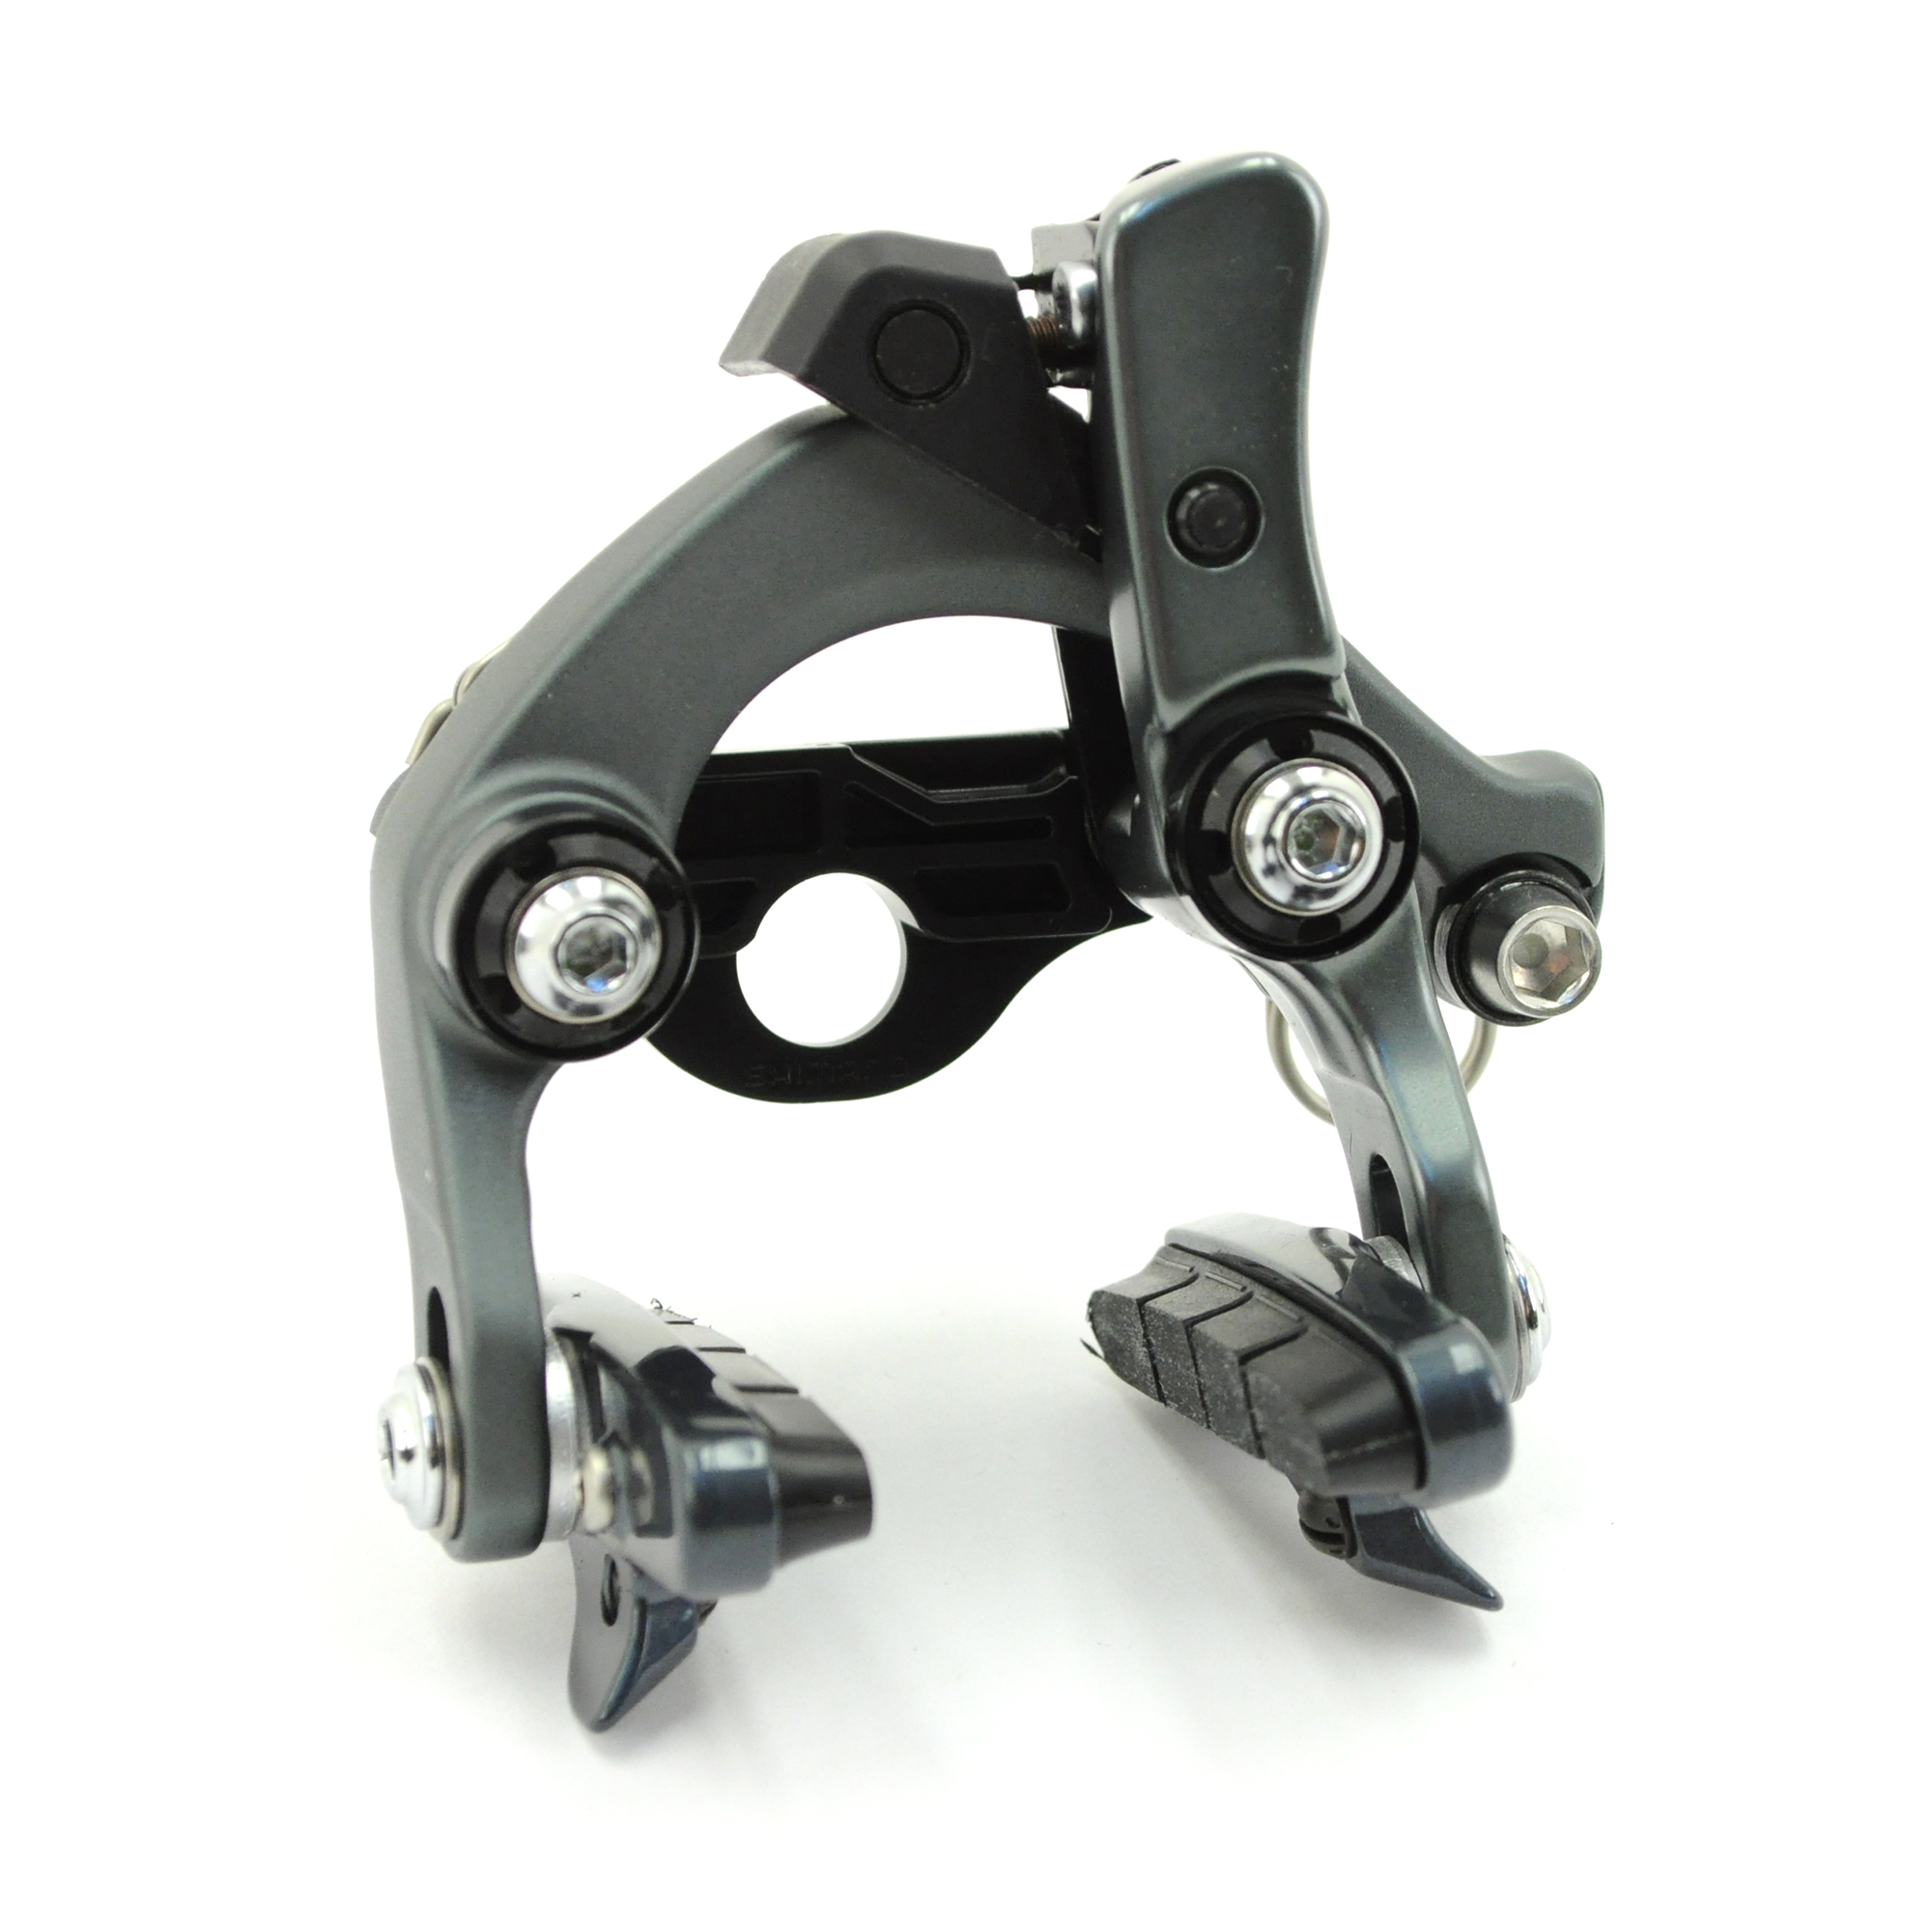 Shimano BR6810-F//R Ultegra Road Bike Direct Mount Caliper Brake Set